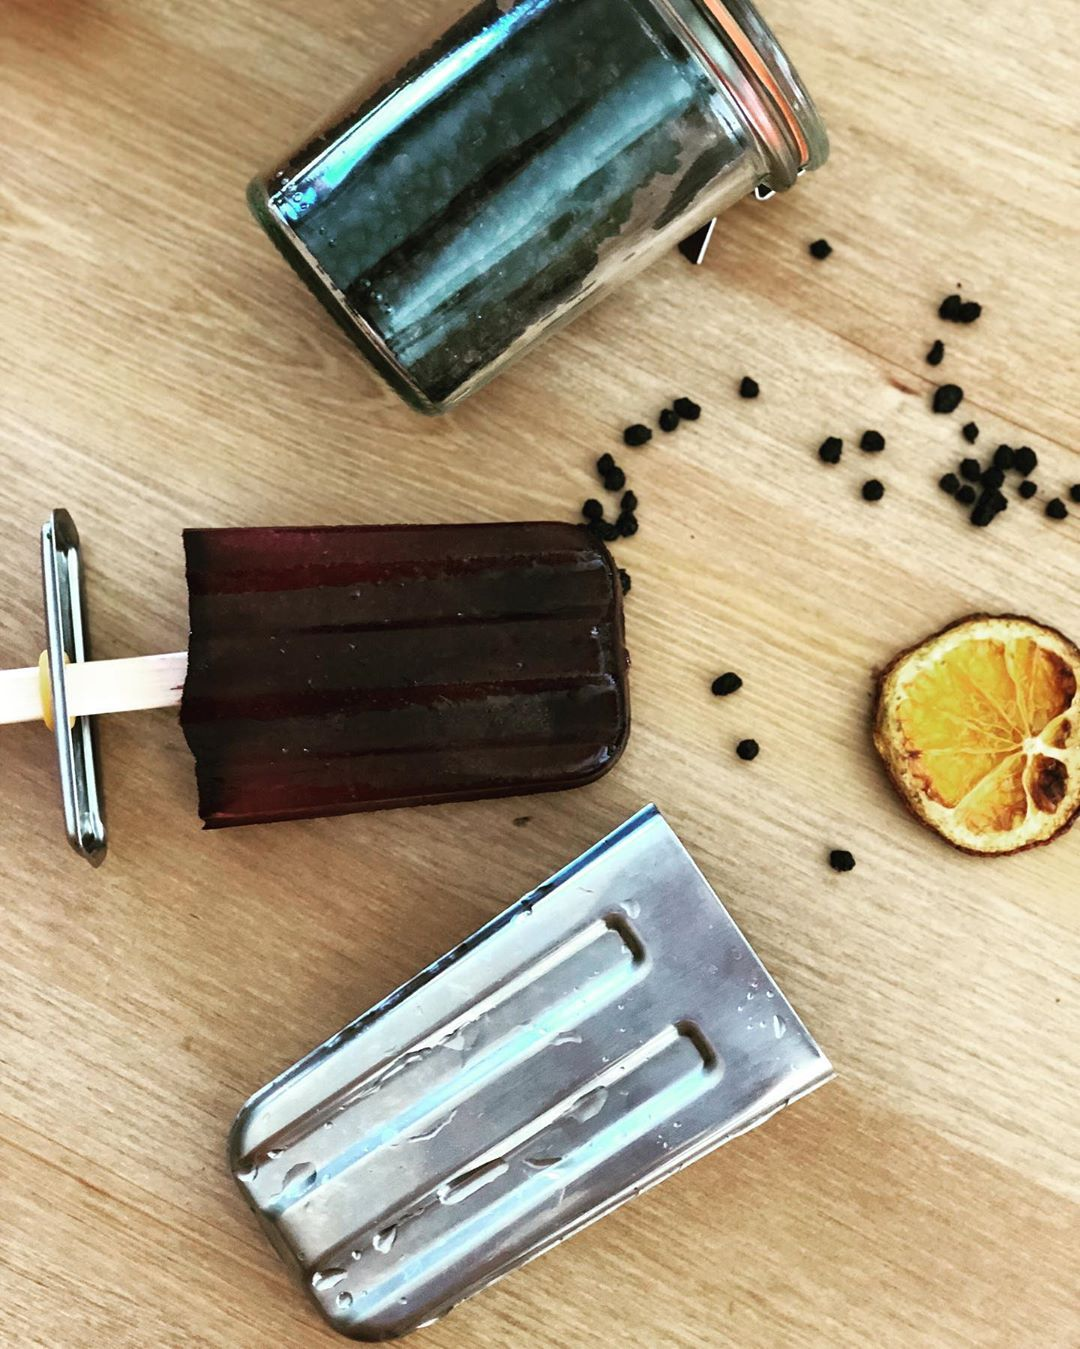 Elderberry and orange popsicles : It is that time of year where throats get scratchy and noses get stopped up. These popsicles are just the trick! Make elderberry syrup (per directions on the kit or whatever you bought) and squeeze 2-3 fresh oranges. Mix elderberry (to the desired dosage for you or your kids) with orange juice and freeze in popsicle molds. Enjoy when sick or when wanting to fend off illness.